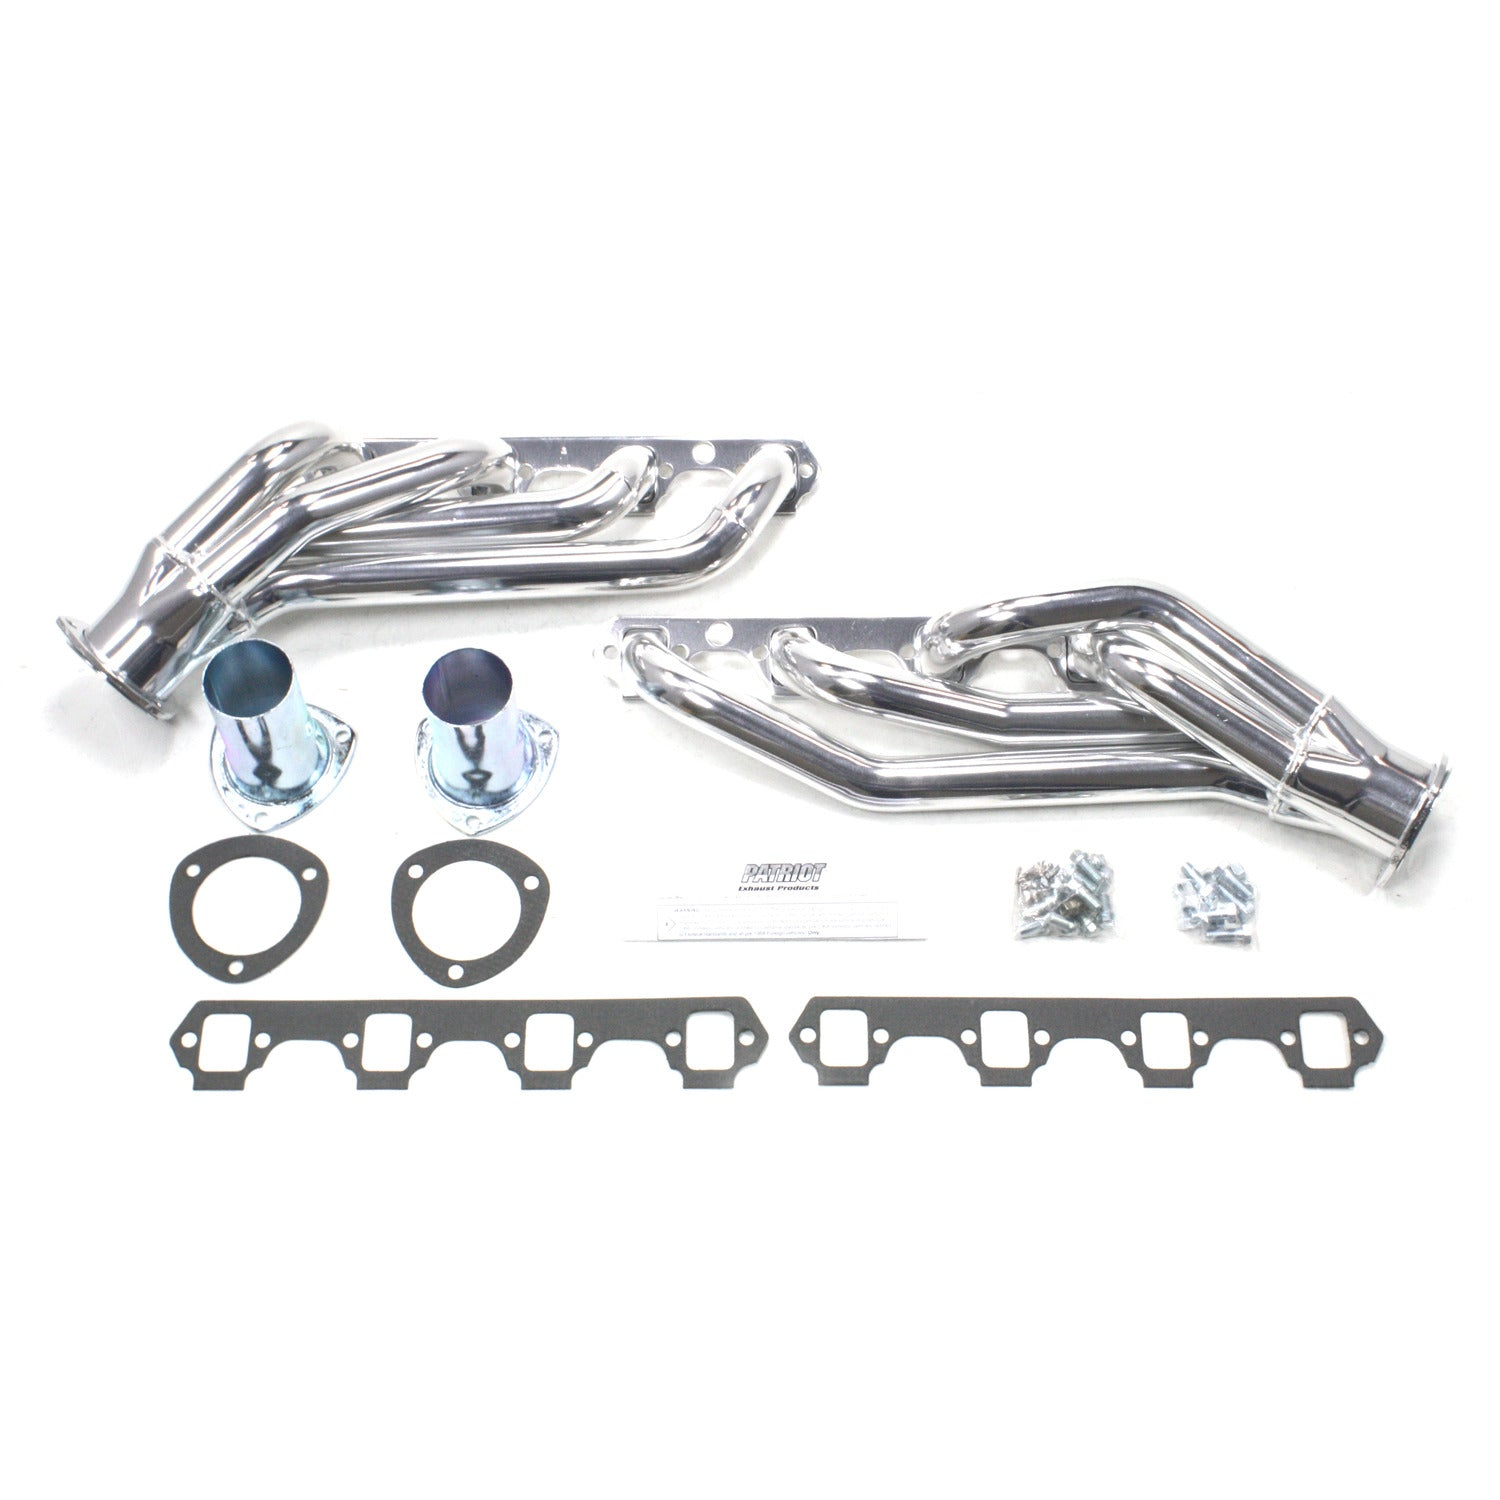 "Patriot Exhaust H8433-1 1 5/8"" Clippster Header Ford Mustang Small Block Ford 64-73 Metallic Ceramic Coating"